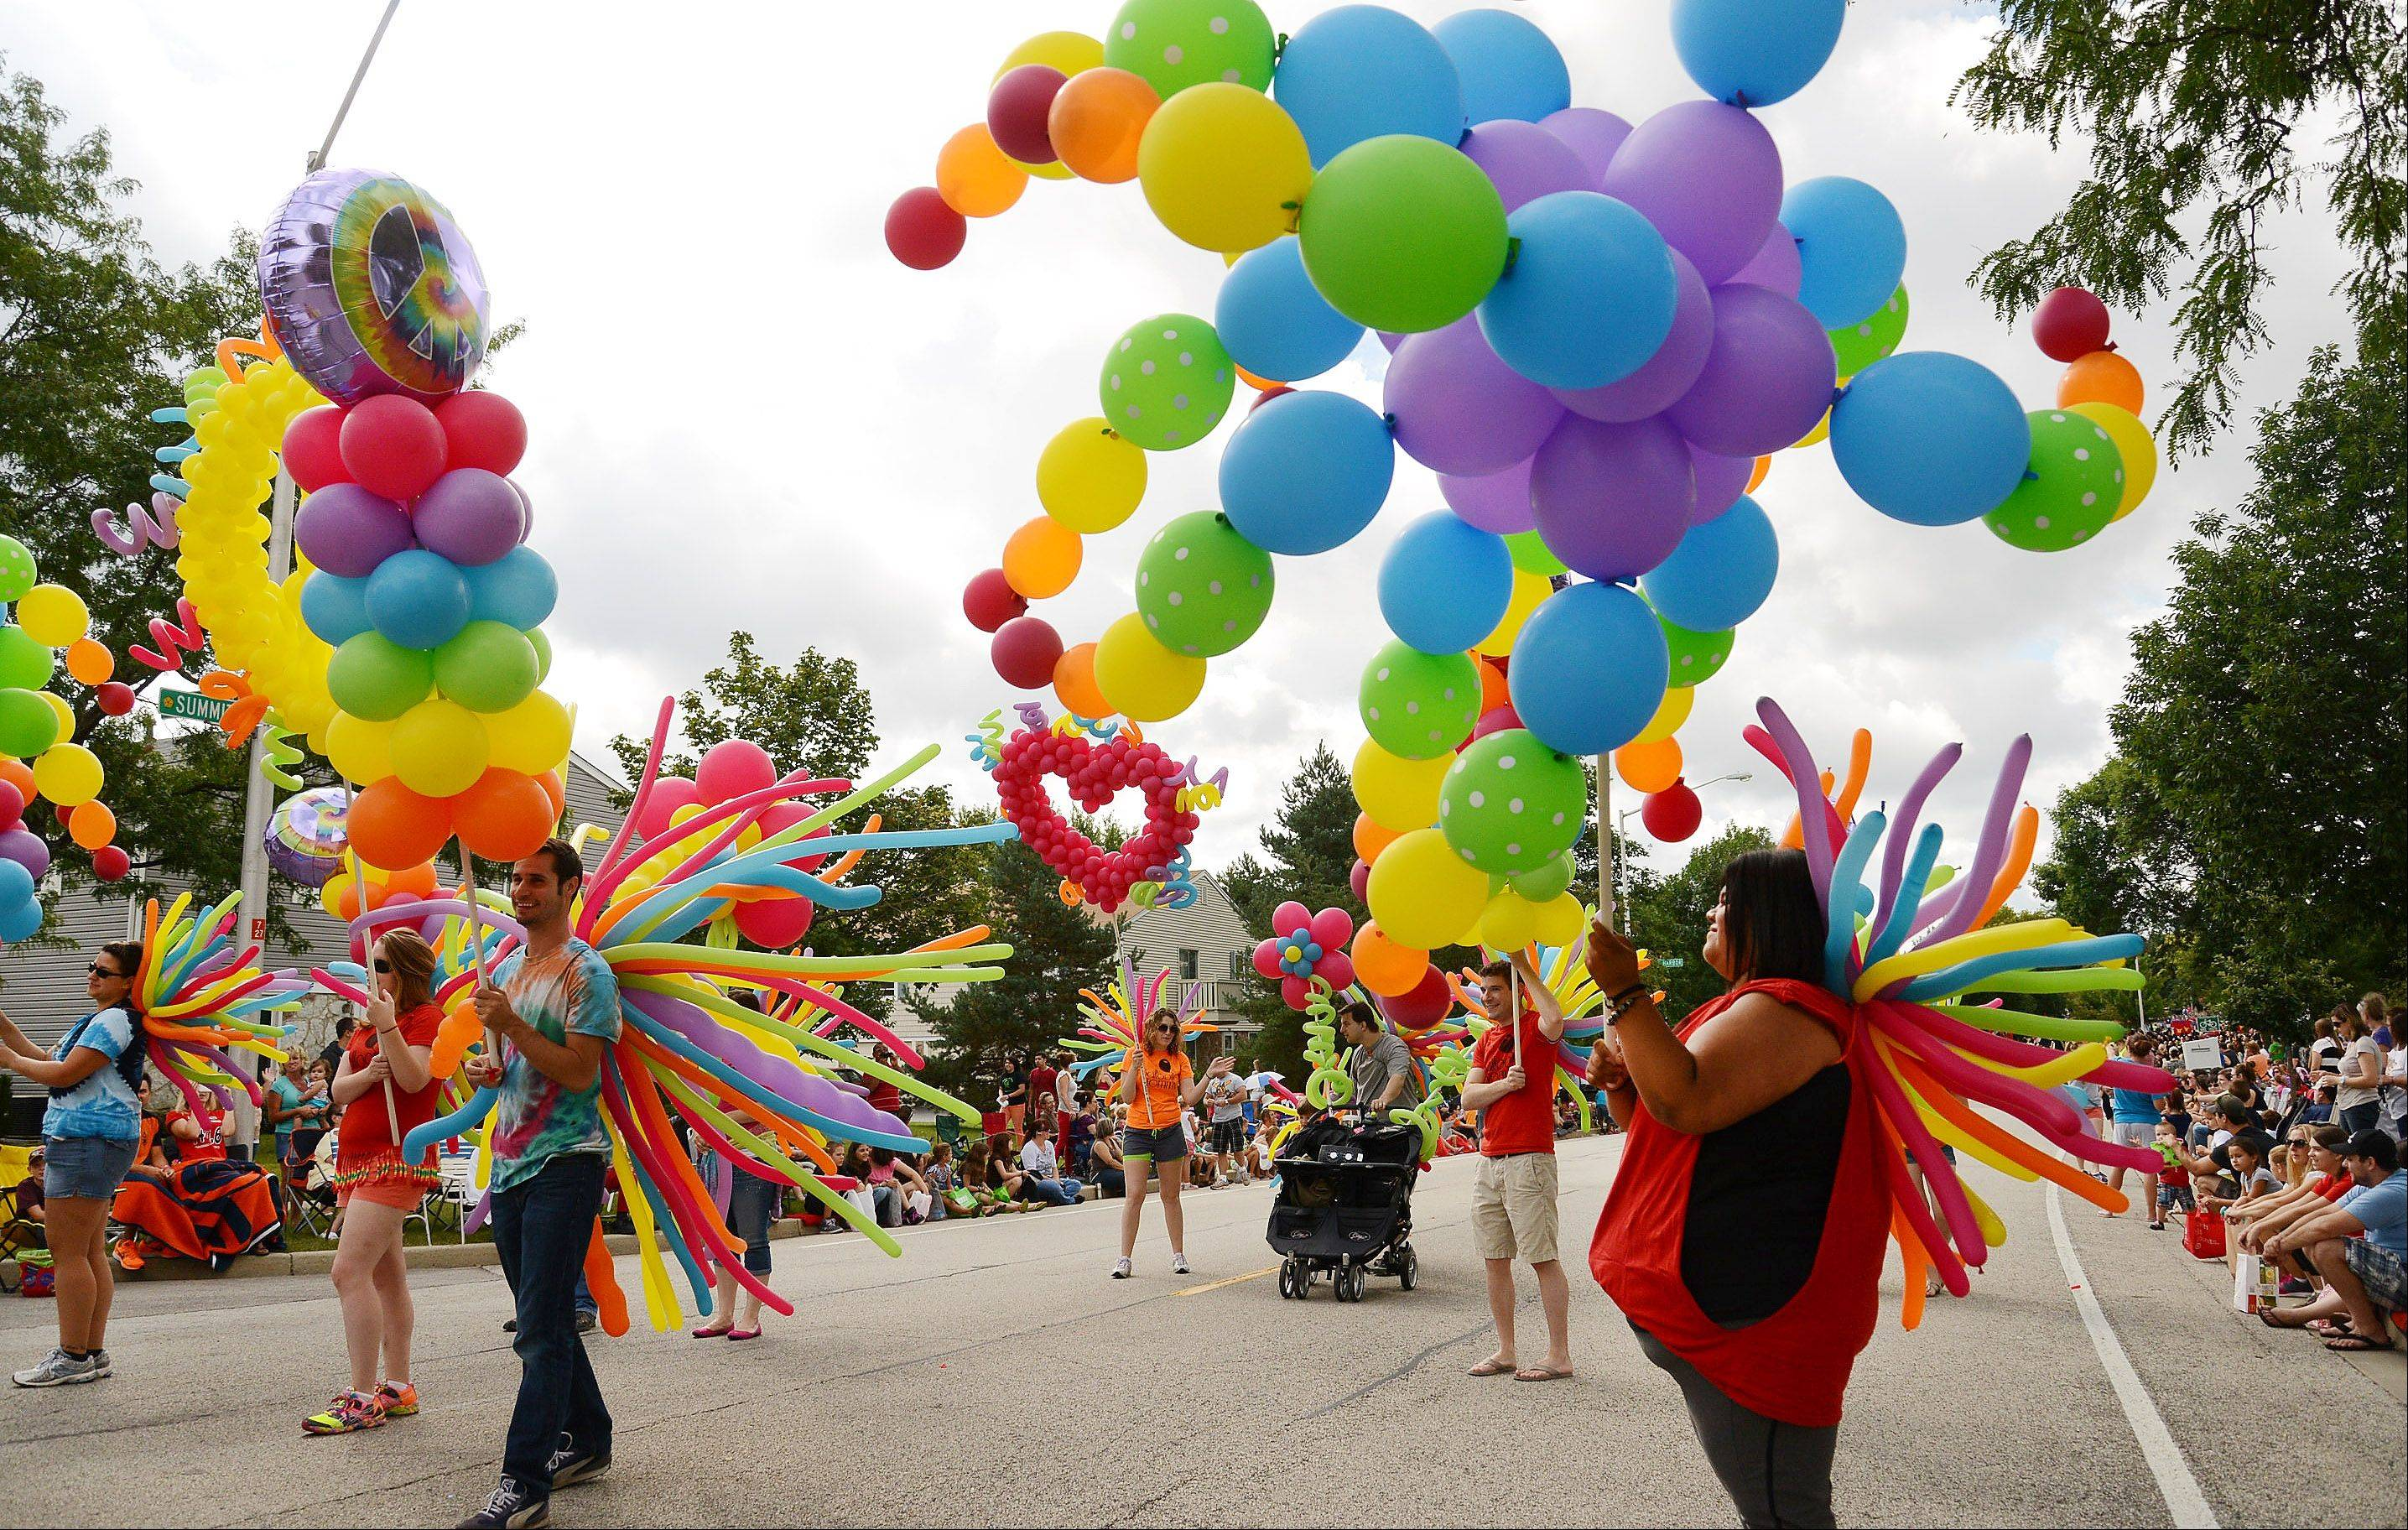 Yomara Ibarra, right, of BalloonsbyTommy.com, marches the parade route Monday at Schaumburg's Septemberfest.